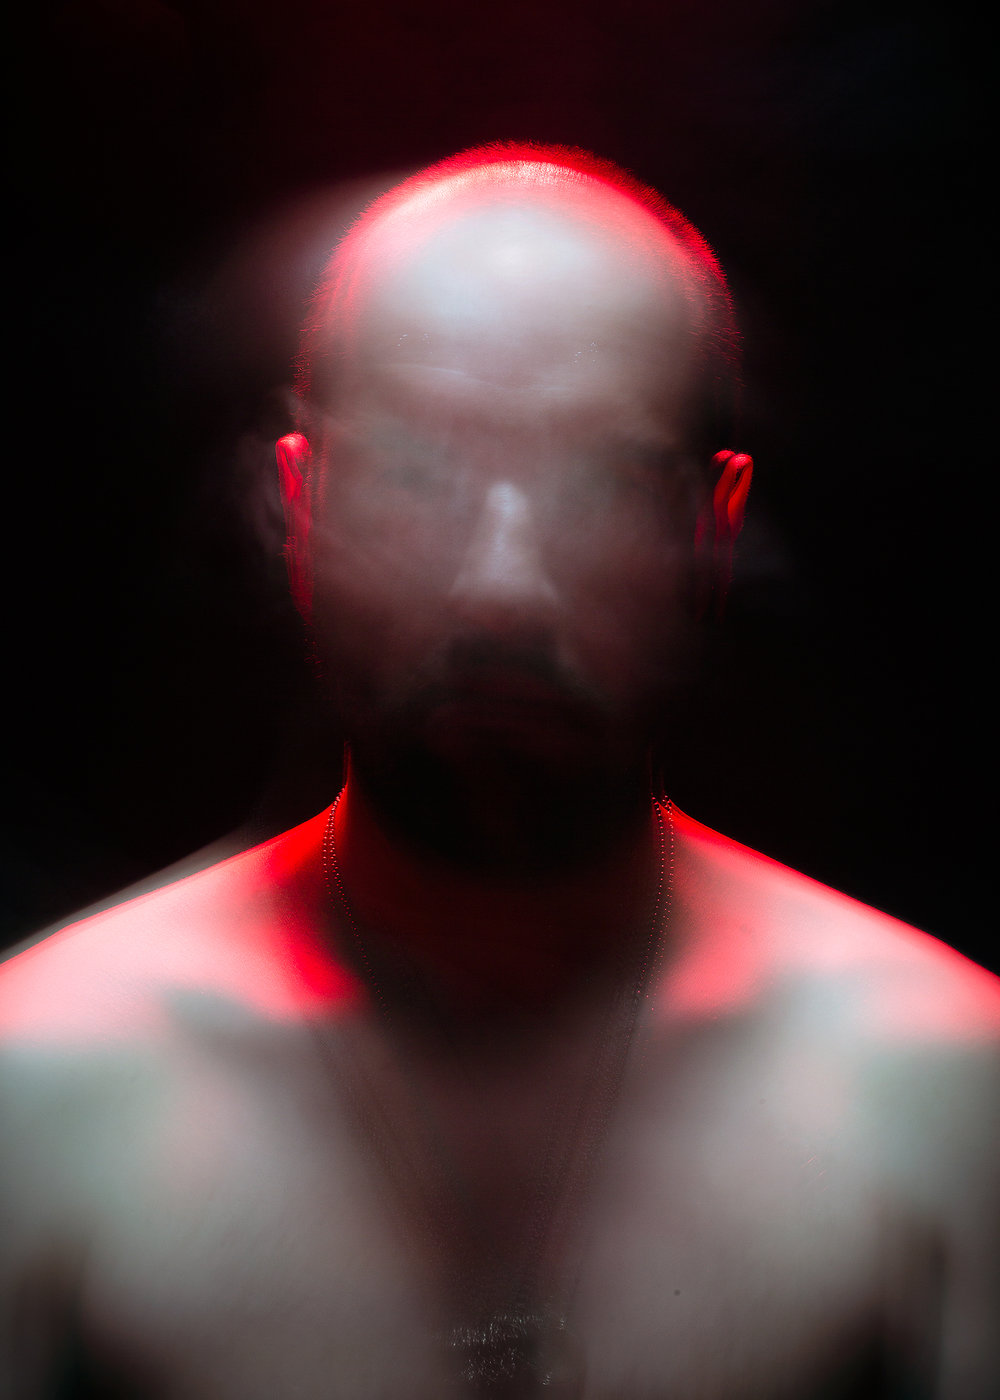 Self-portrait at 37, 2016. Long-exposure image by Michael Clinard.